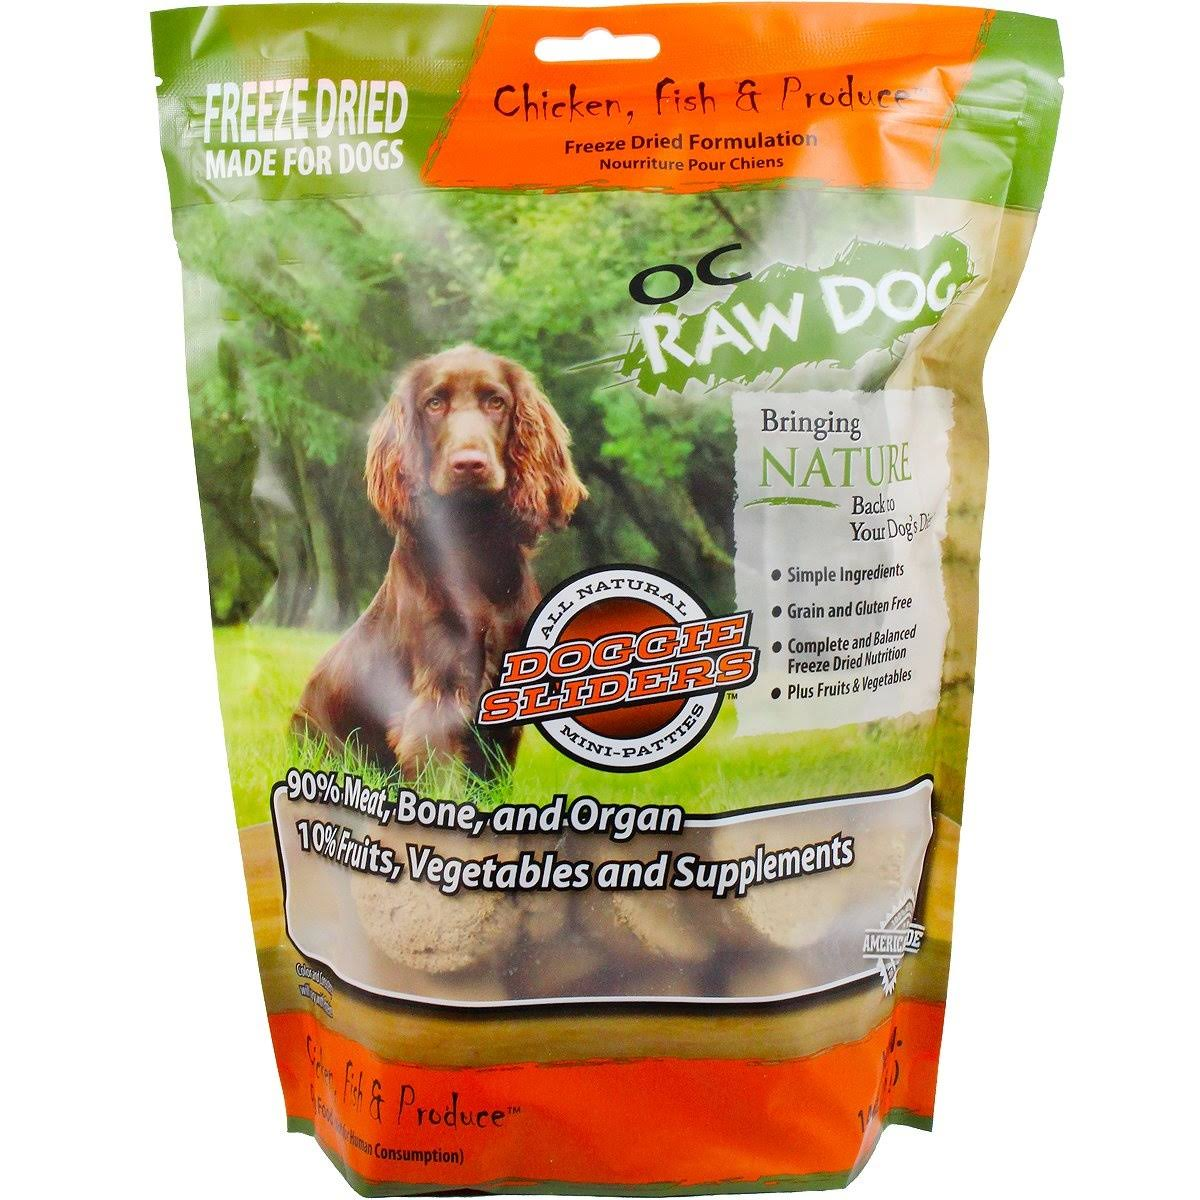 OC Raw Dog Freeze Dried - Chicken Fish & Produce